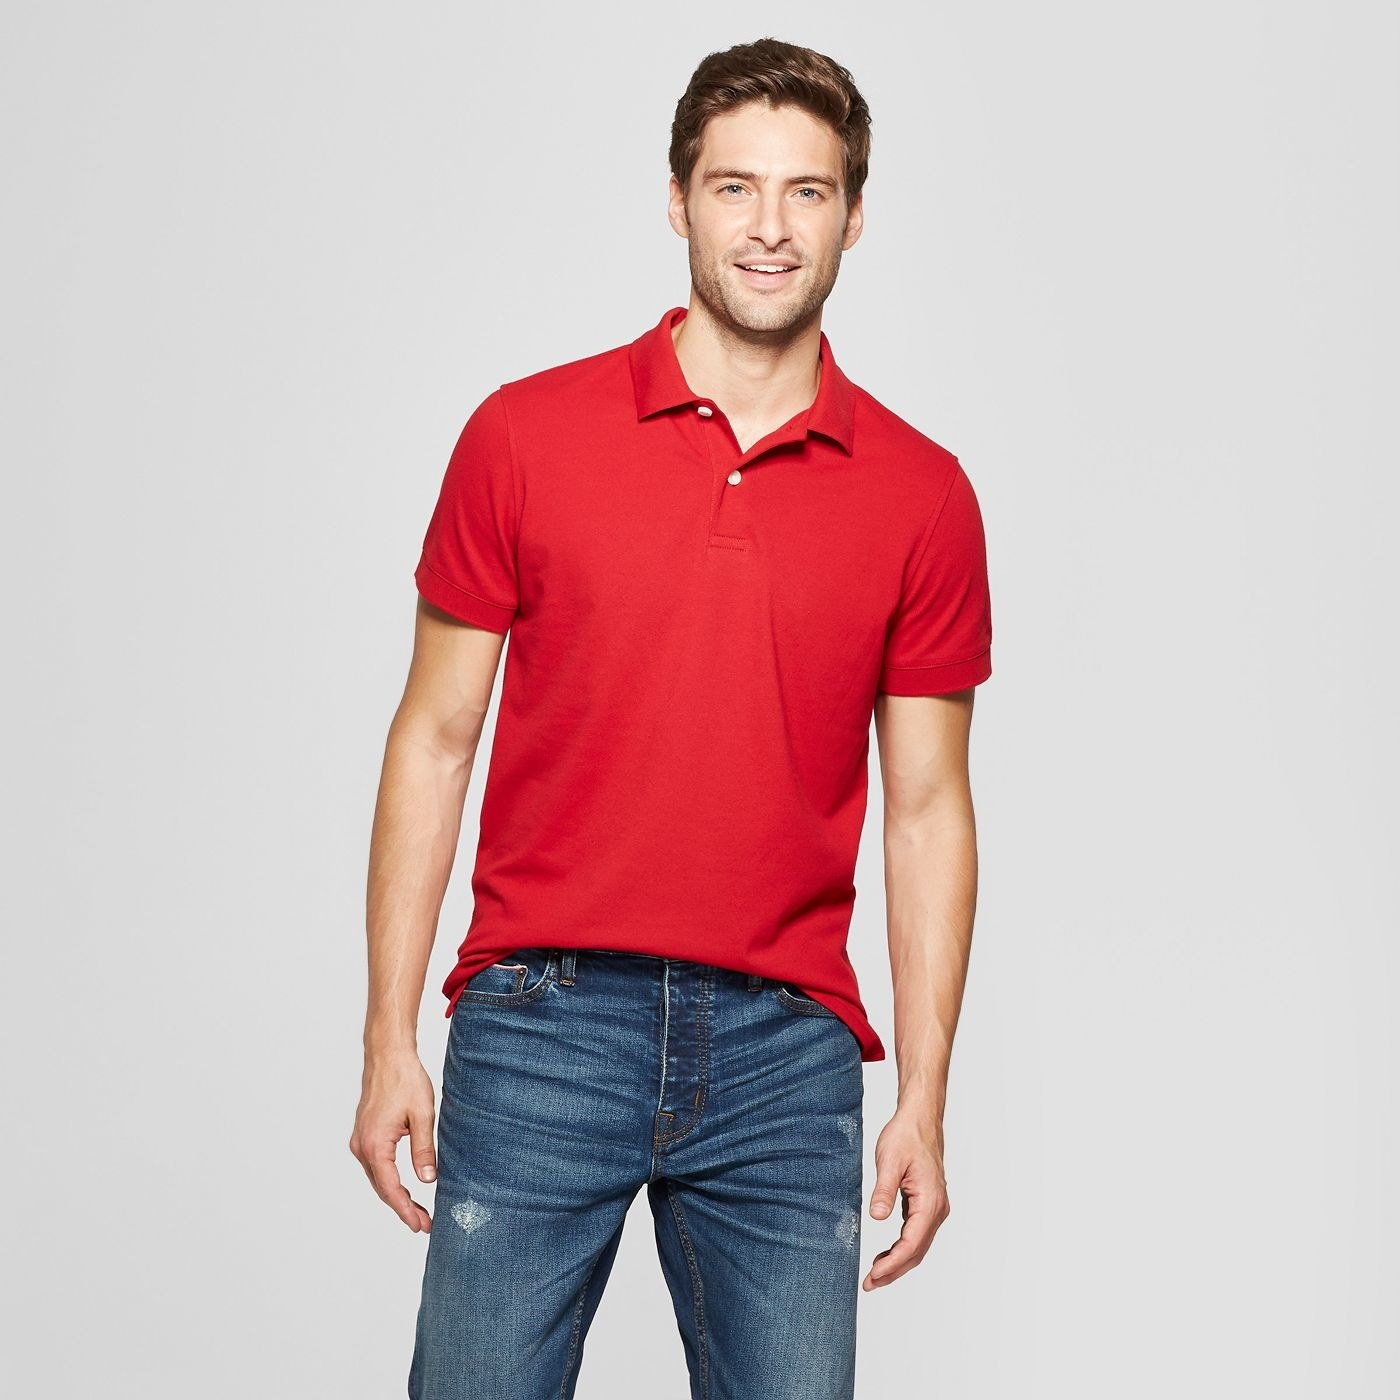 Men's polo shirt with two buttons